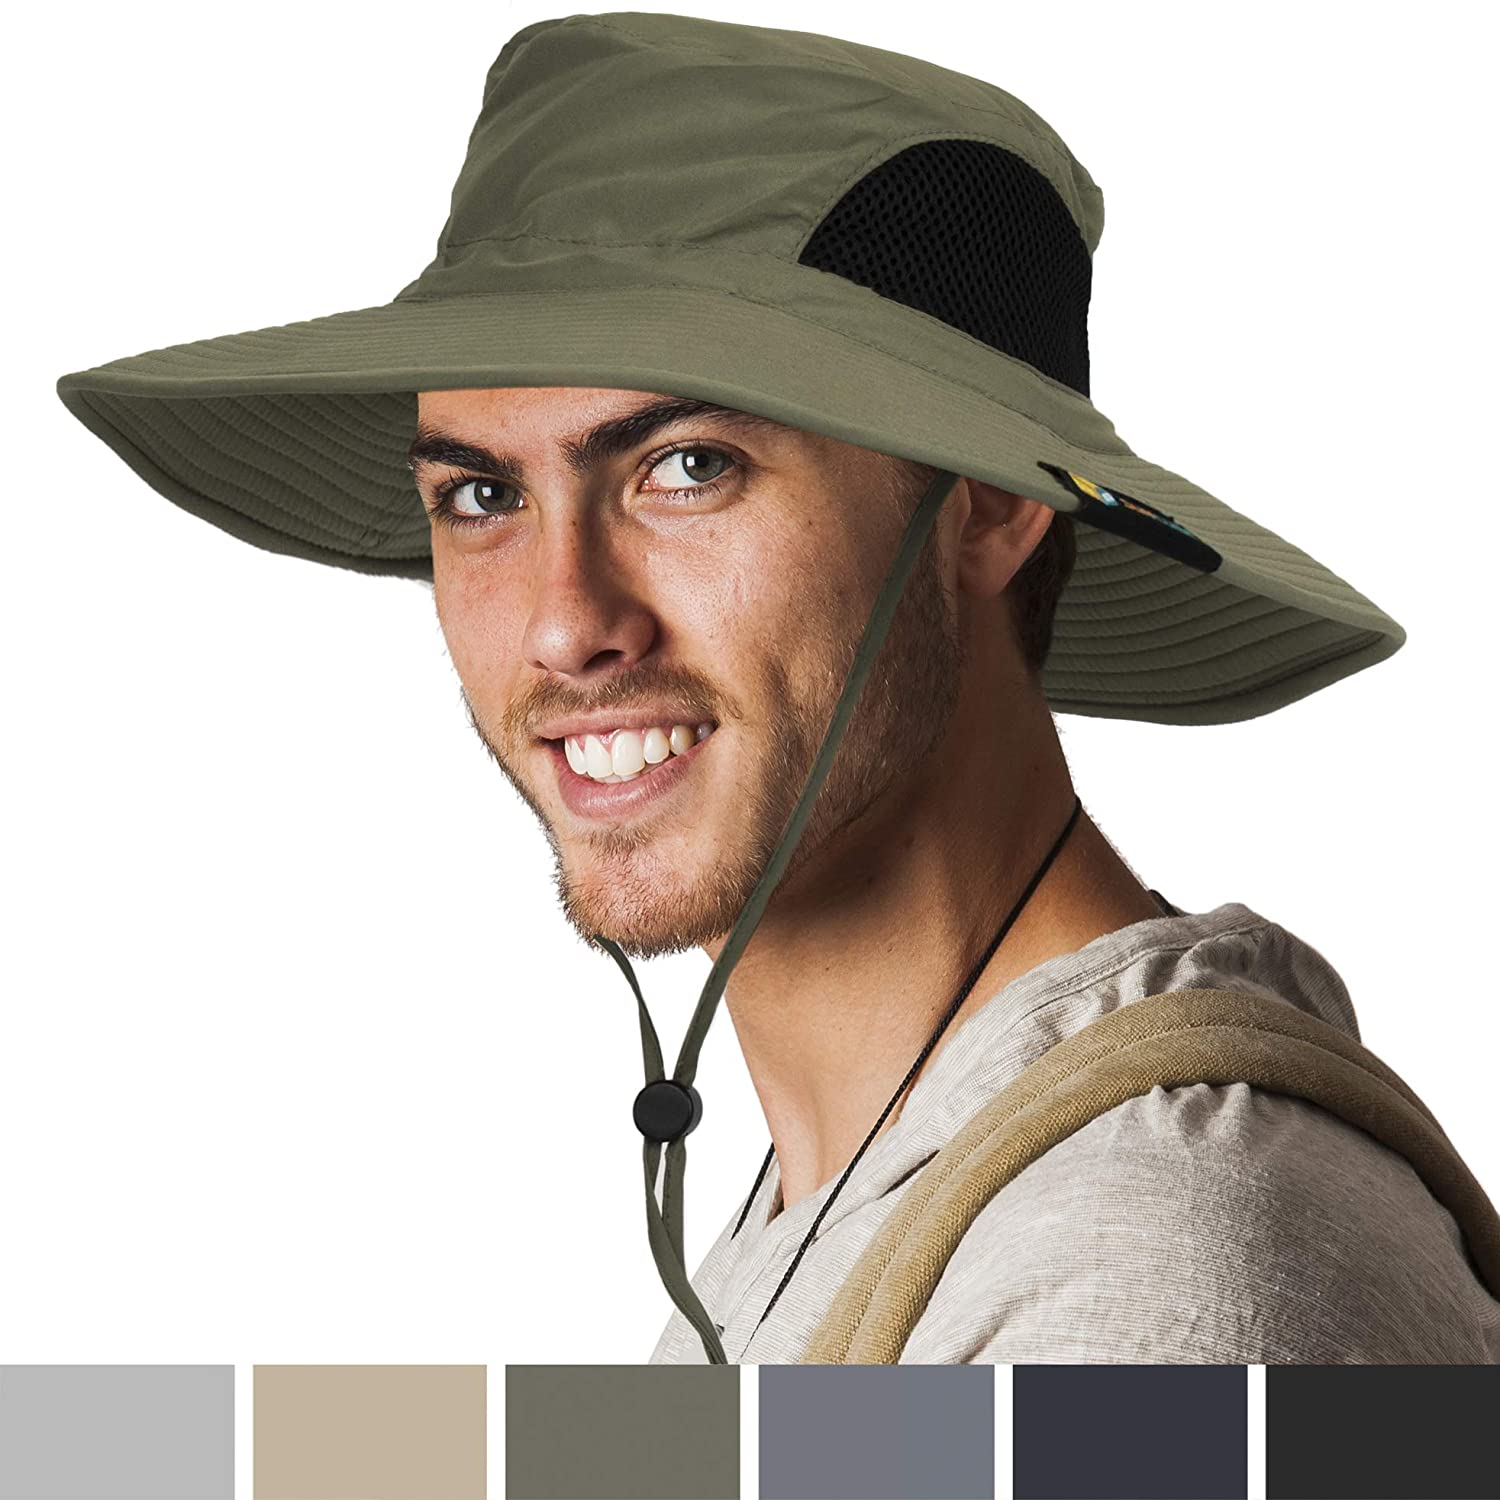 SUN CUBE Premium Boonie Hat with Wide Brim, Adjustable Chin Strap | Outdoor Hat for Fishing, Hiking, Camping, Safari, Travel | Summer Sun Protection, UPF 50+| Breathable Packable Cap for Men, Women